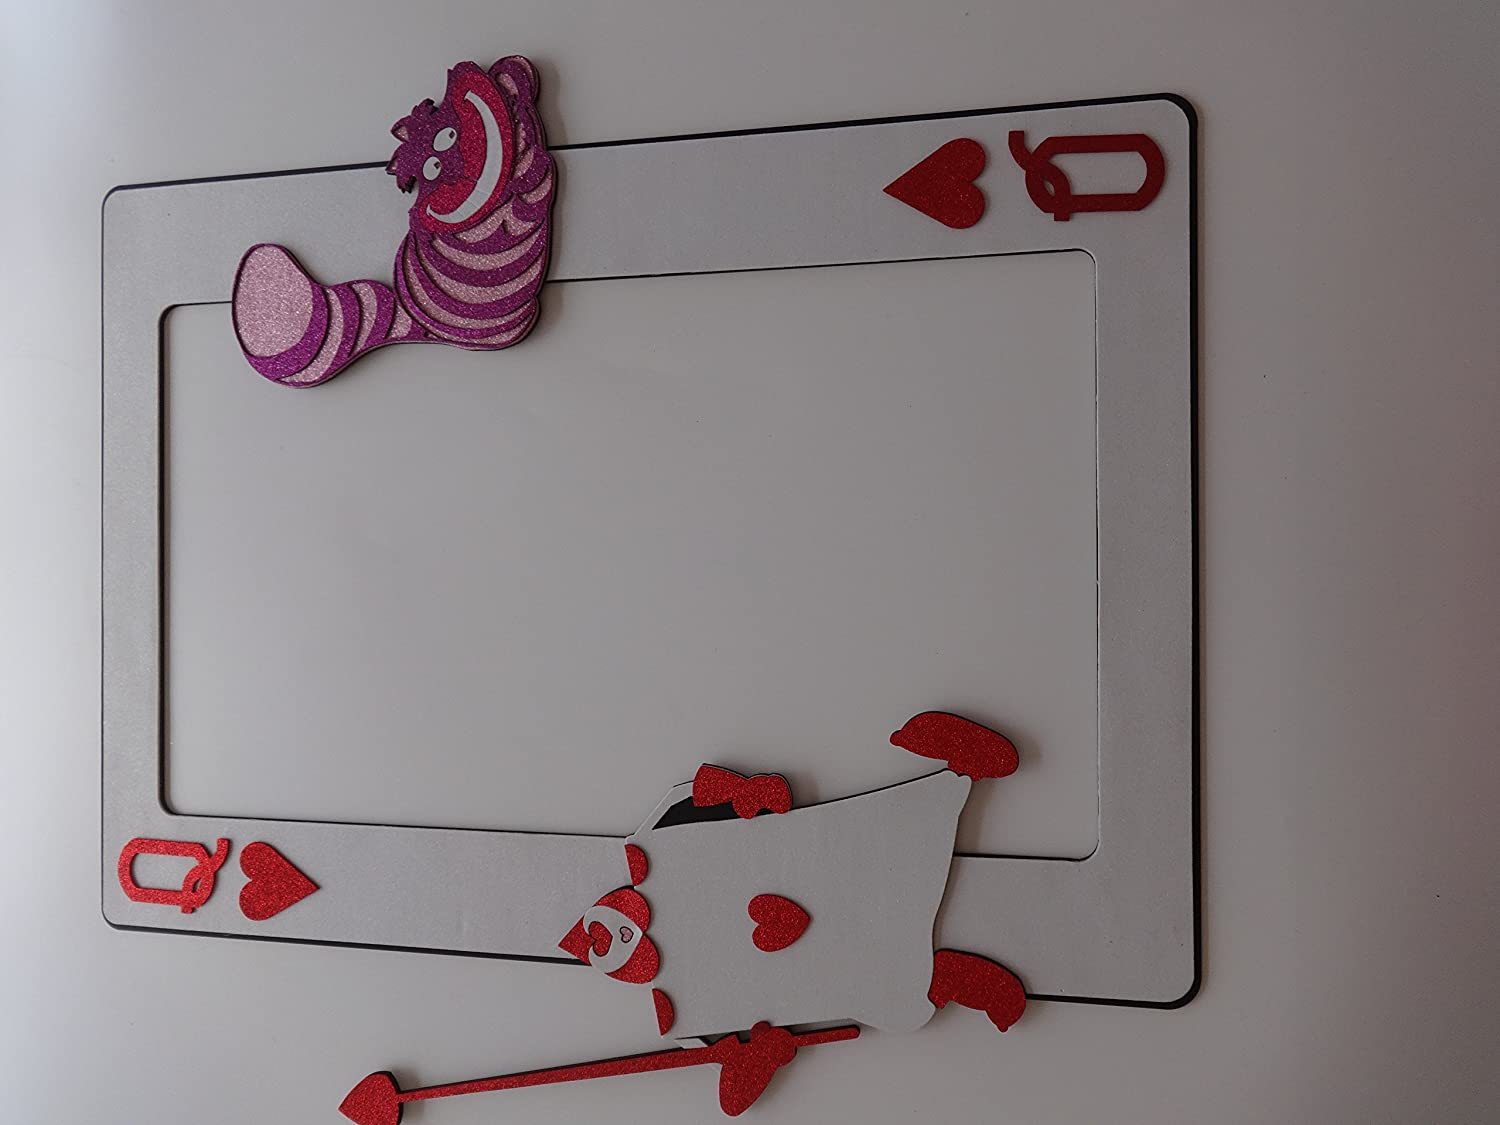 Amazon.com: 1 Pc Photo Booth Party Props Frame Alice in Wonderland ...